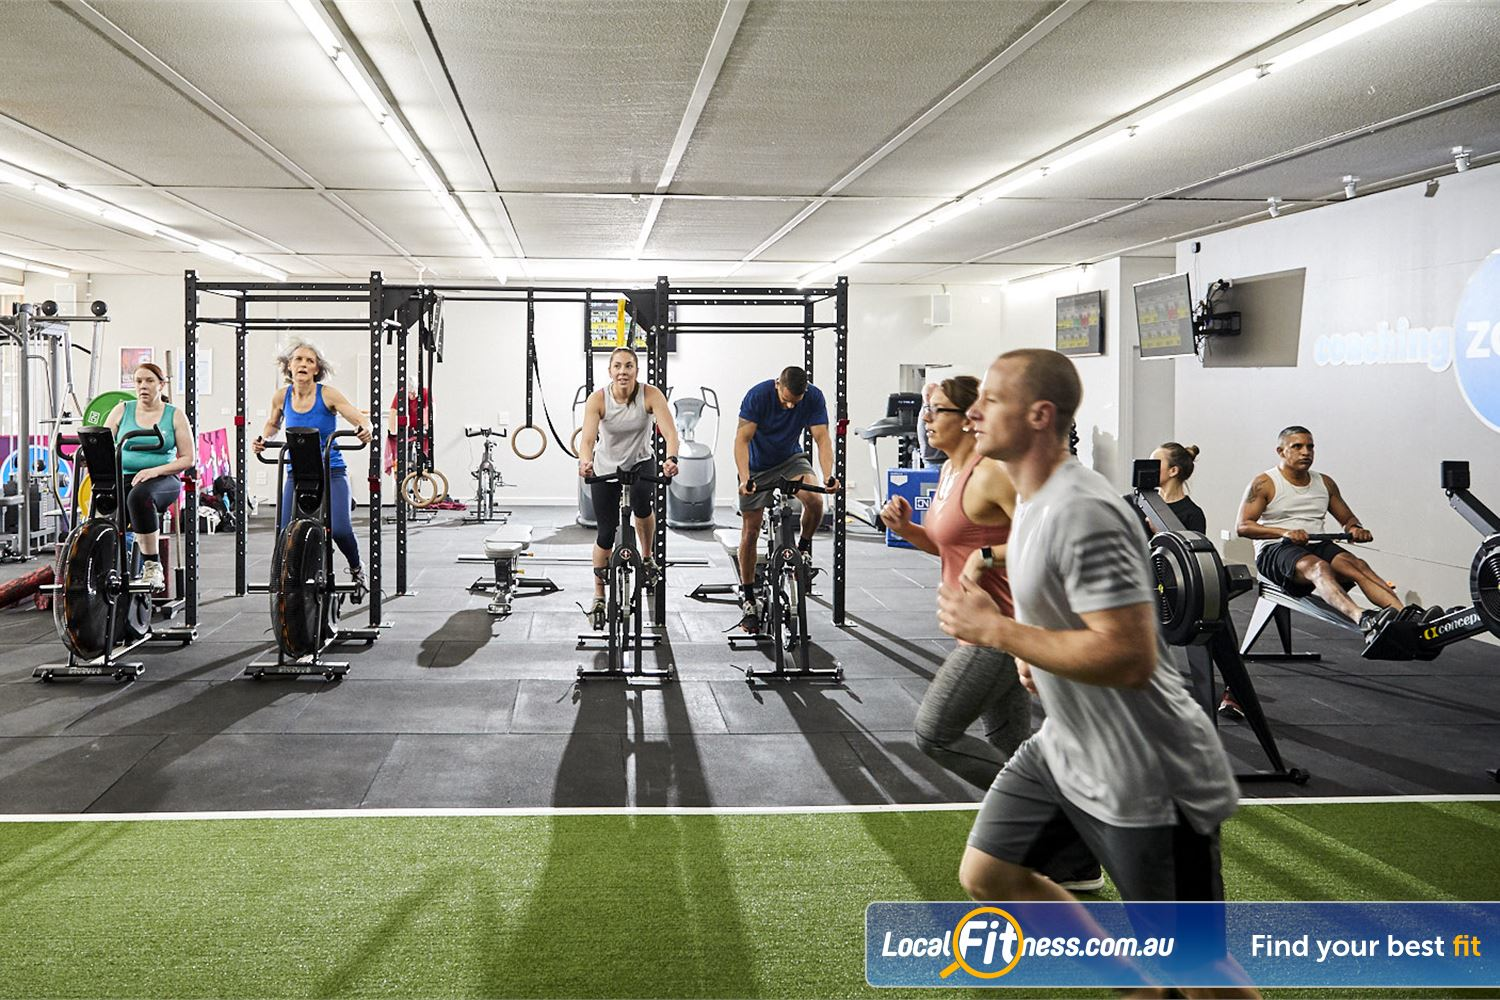 Coaching Zone Ferntree Gully Welcome to the Coaching Zone Ferntree Gully - Group Training specialists.